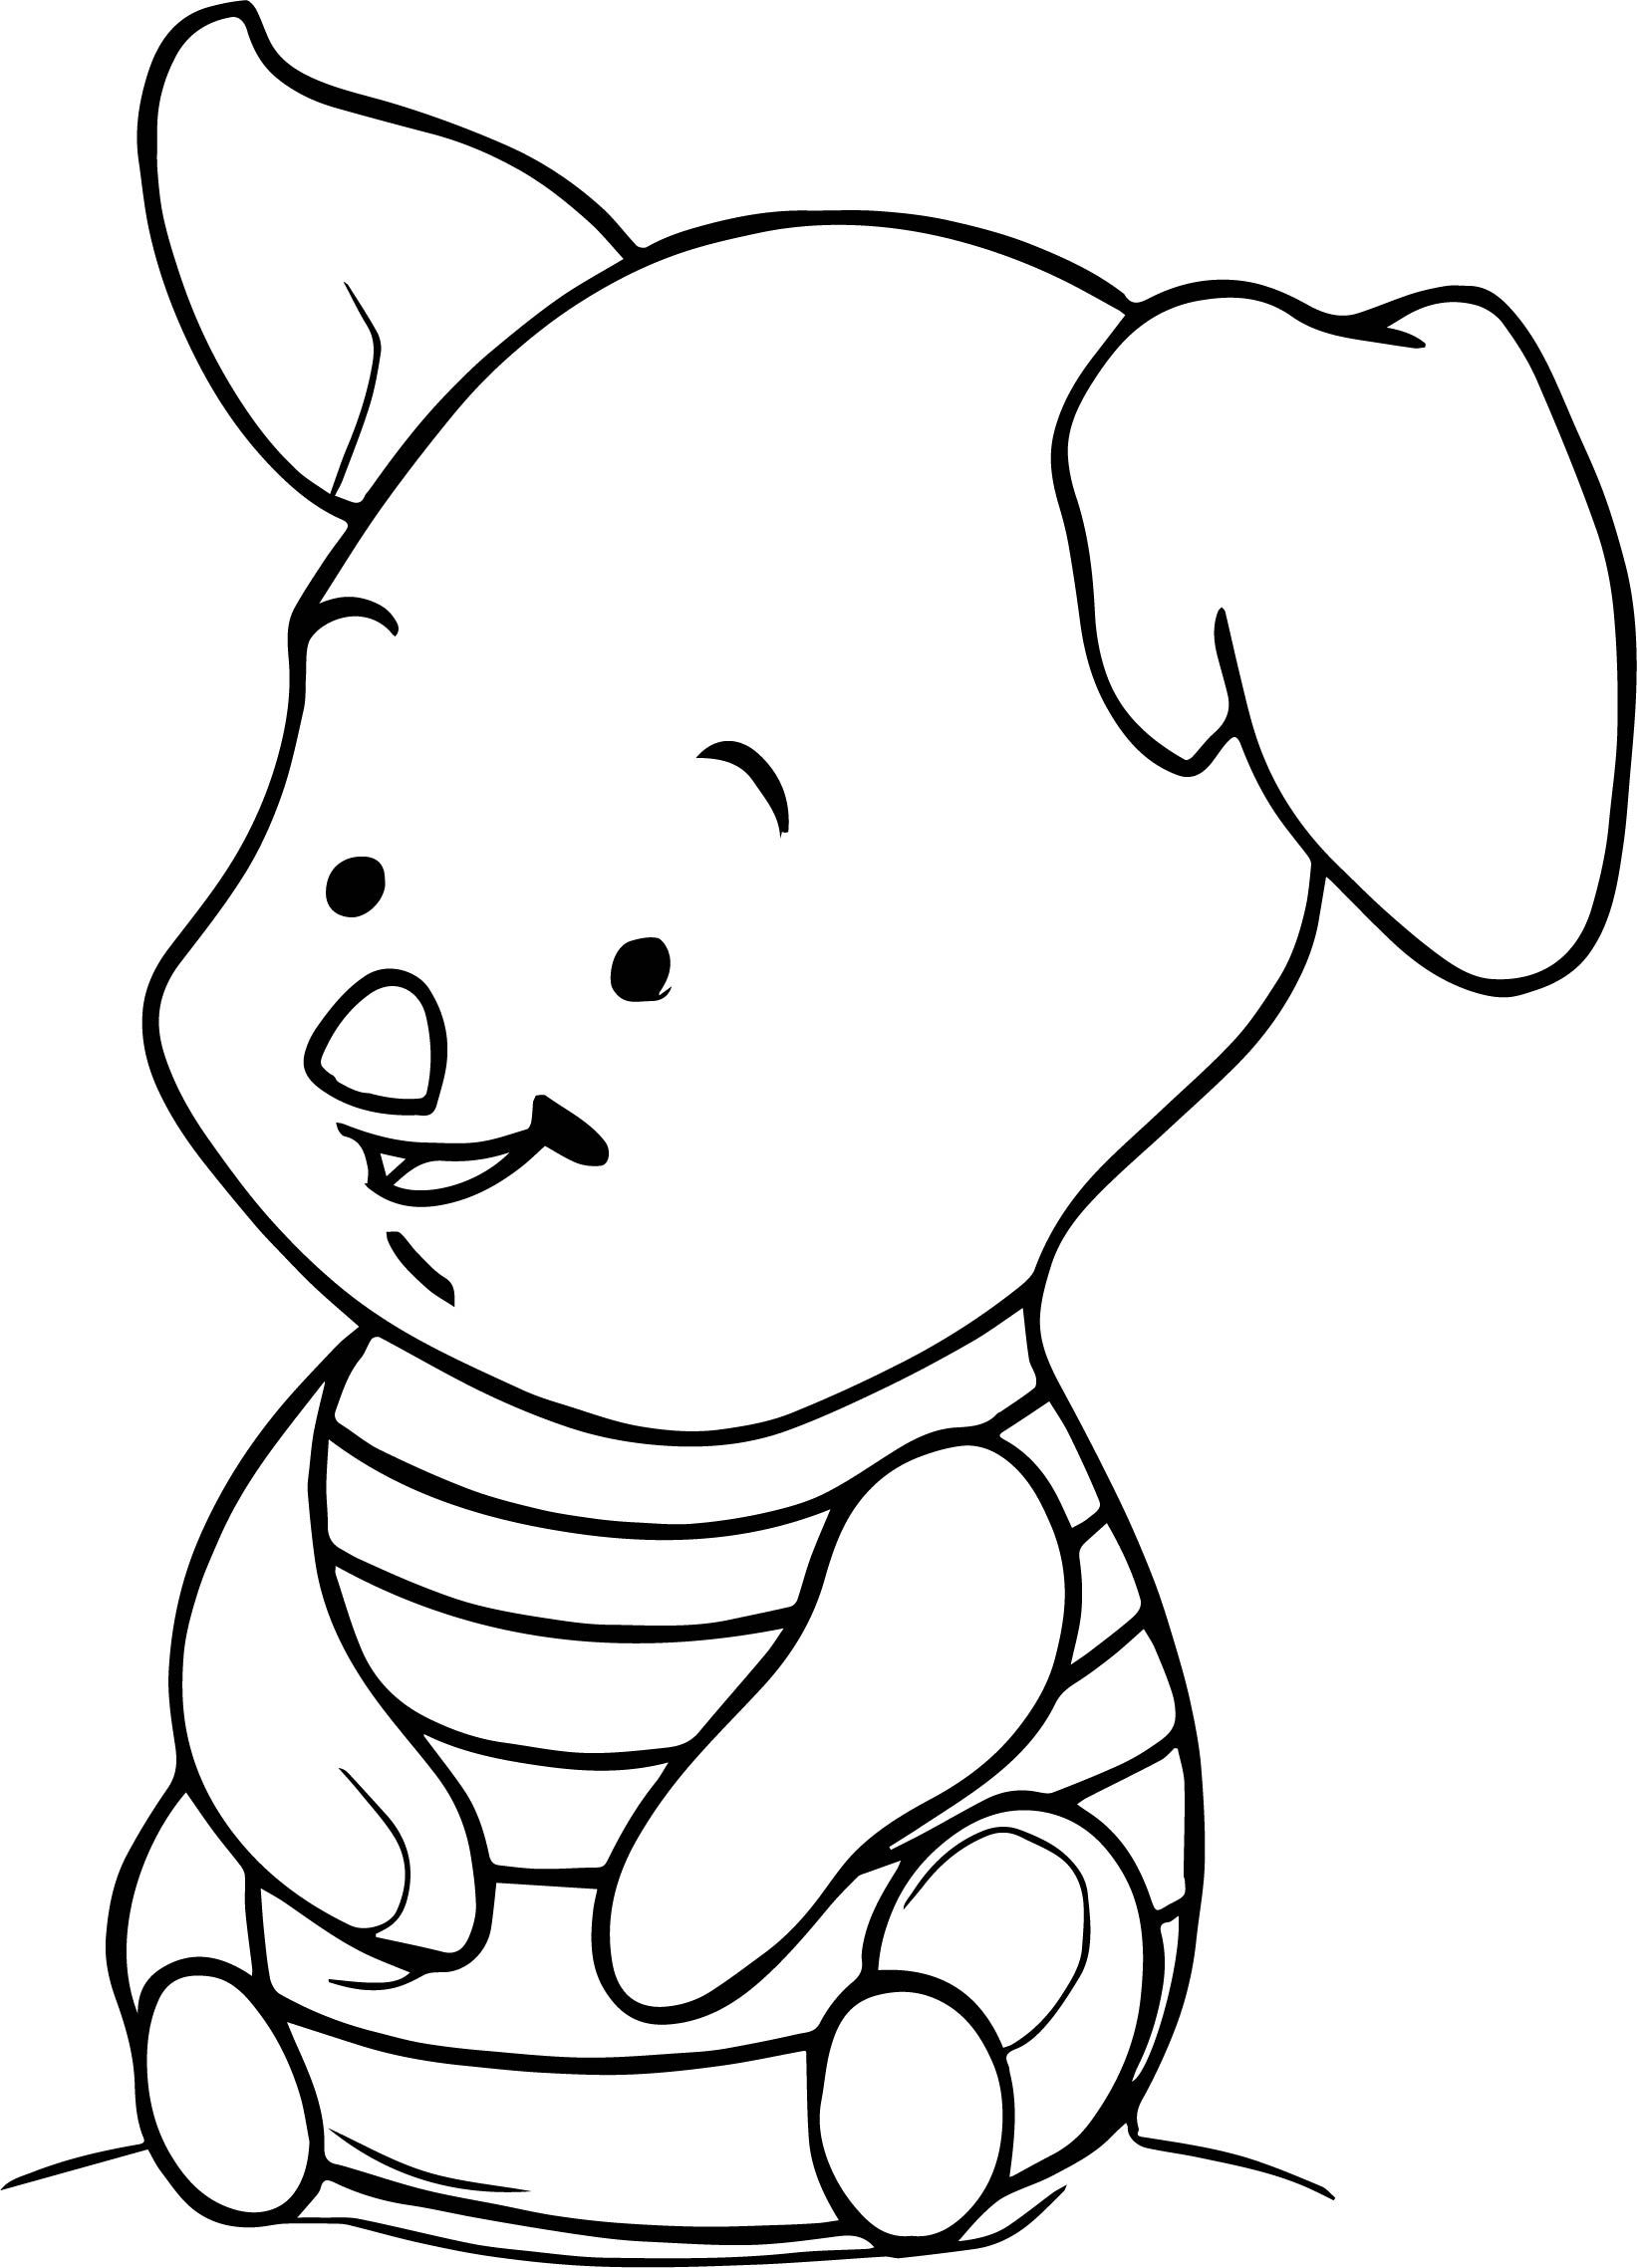 Nice How To Draw Baby Piglet Coloring Page Baby Piglets Piglet Drawing Cute Baby Pigs